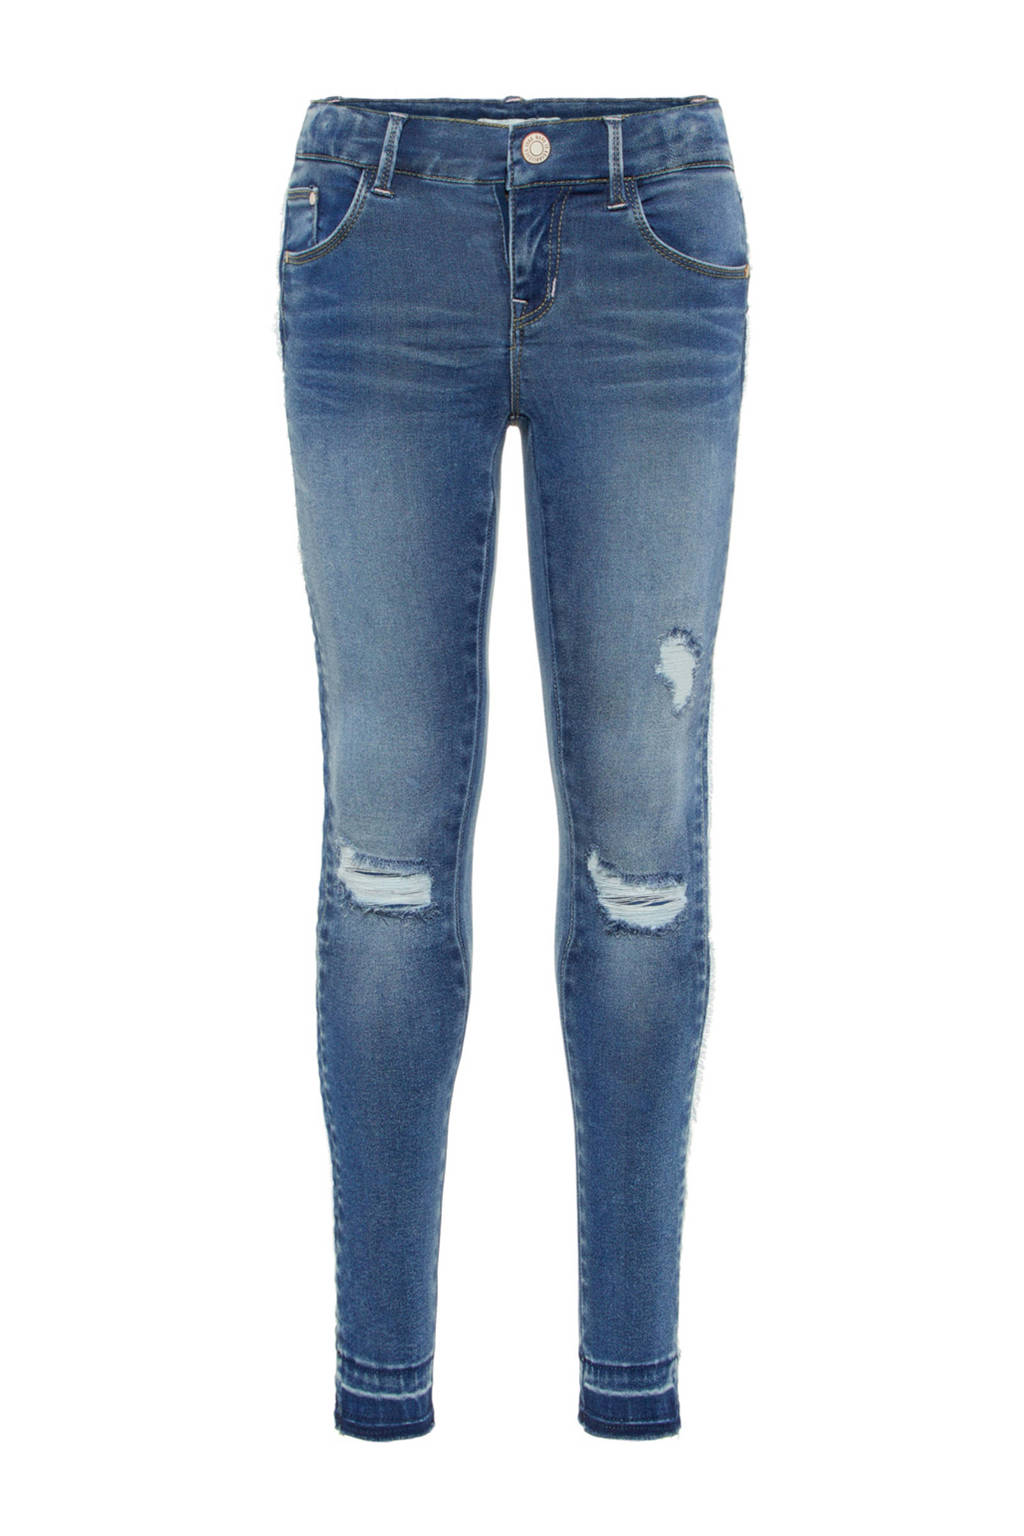 name it KIDS skinny fit jeans Polly met slijtage details, Blauw